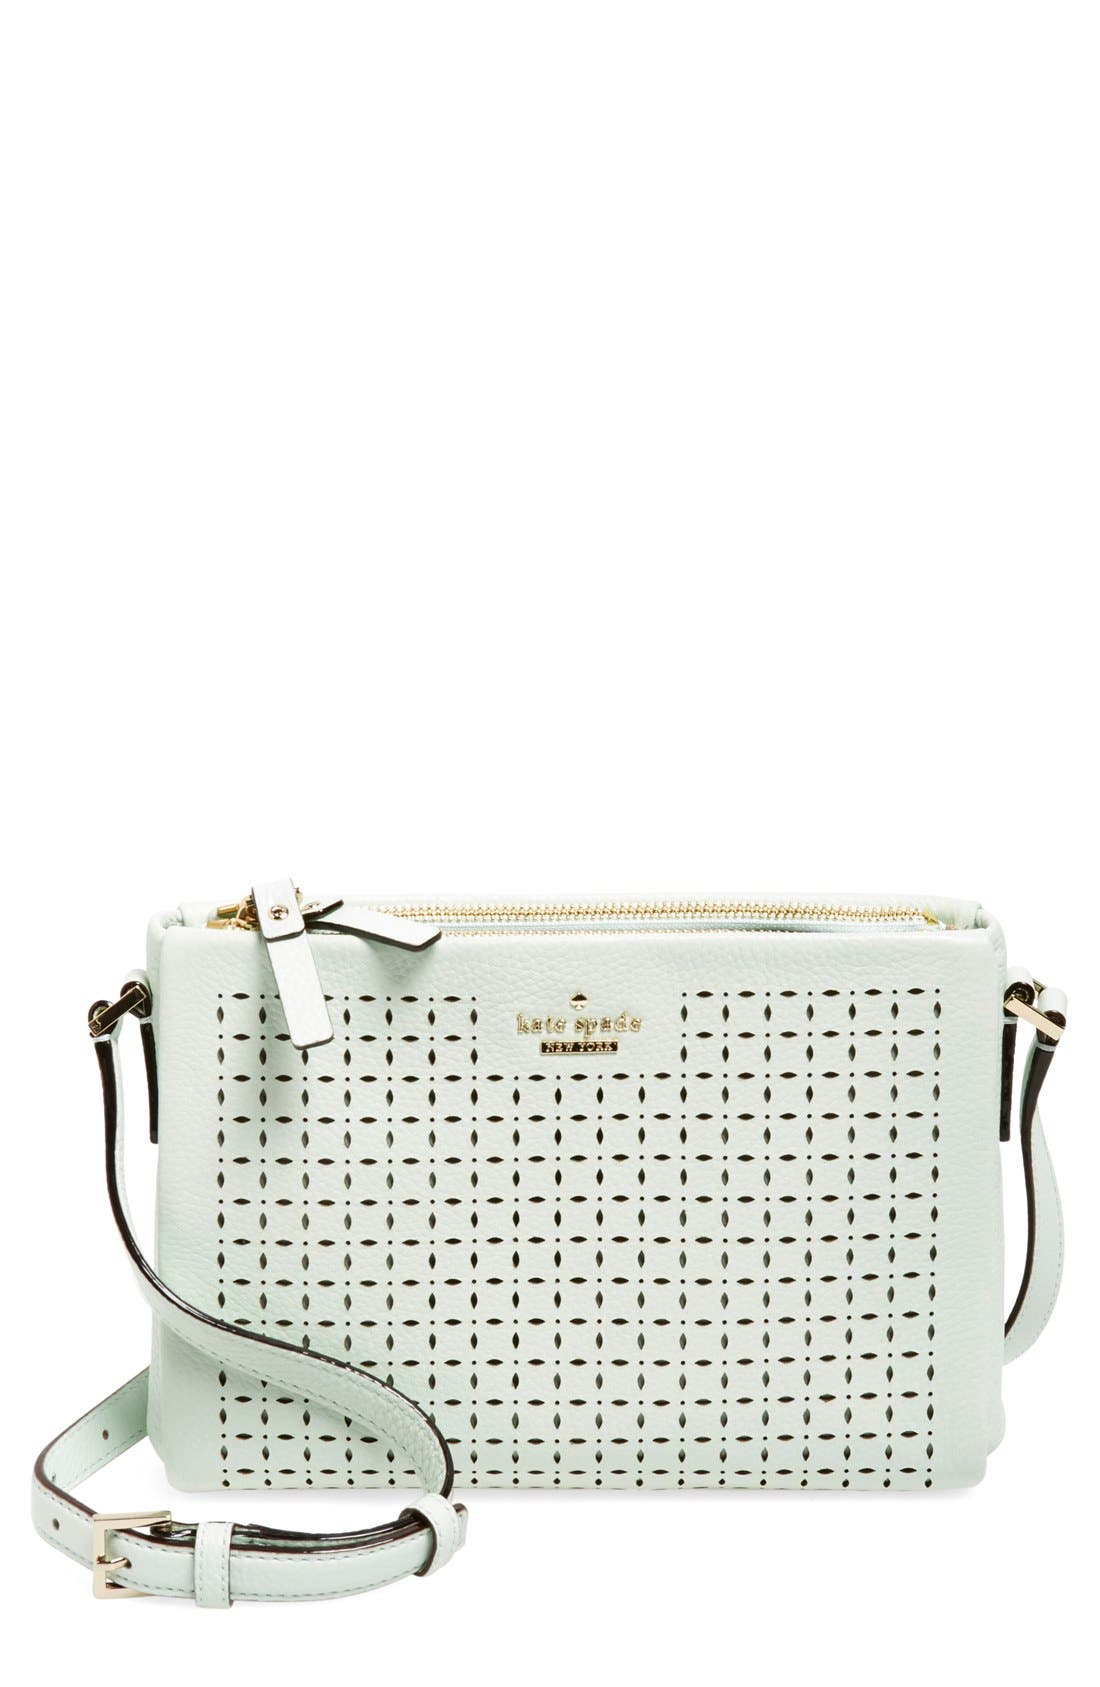 Alternate Image 1 Selected - kate spade new york 'milton lane - lilibeth' perforated leather crossbody bag (Nordstrom Exclusive)